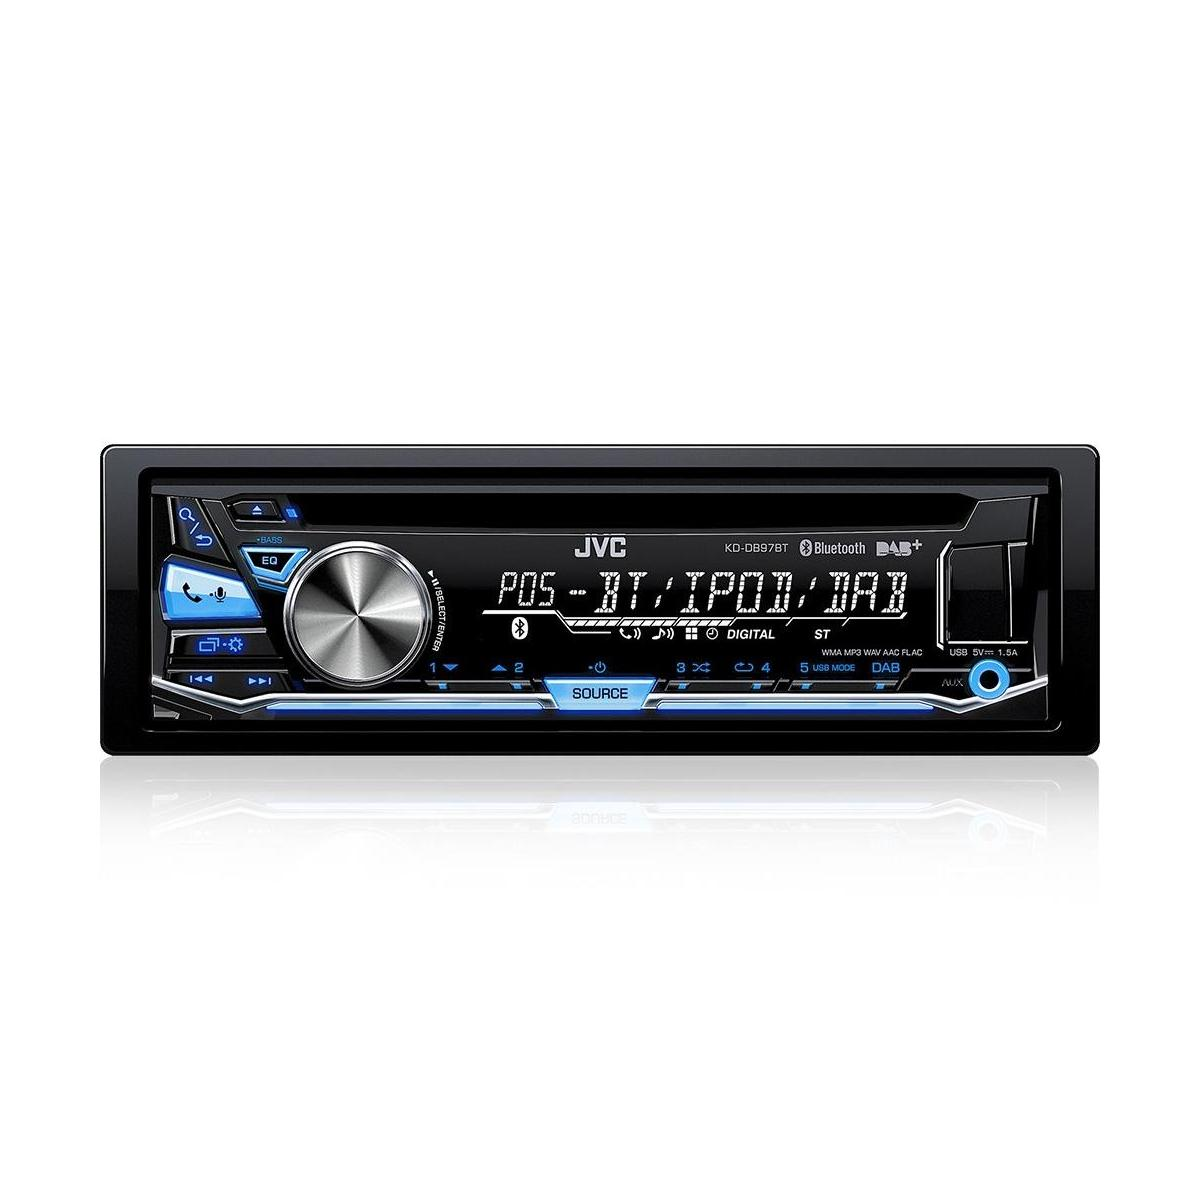 kd db97bt cd mp3 car stereo with front usb aux input and bui. Black Bedroom Furniture Sets. Home Design Ideas